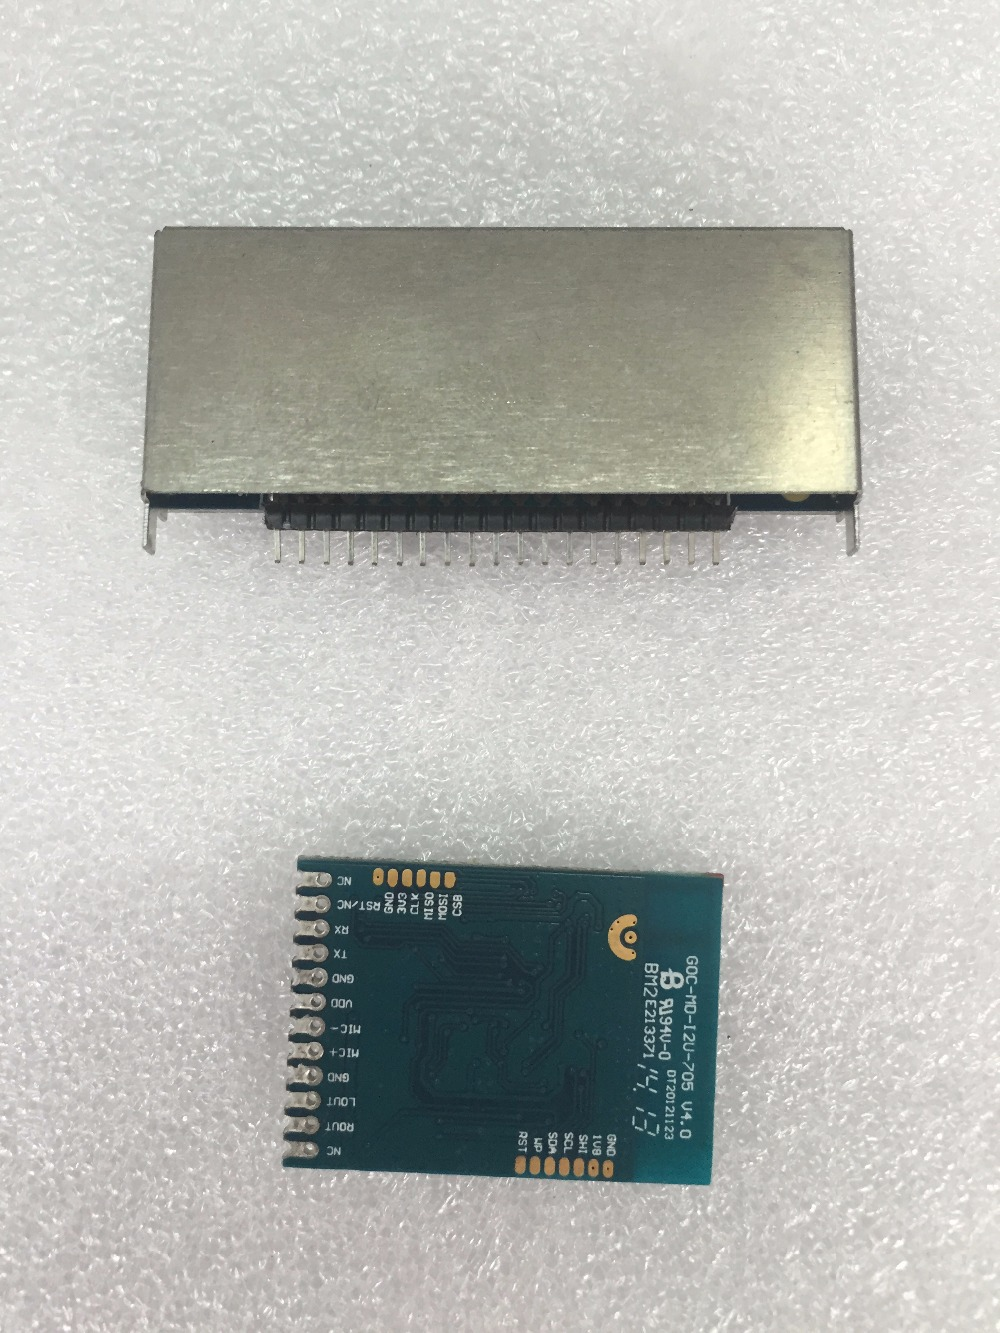 fit for car dvd gps radio module si 4755 chip component and bluetooth module(China (Mainland))